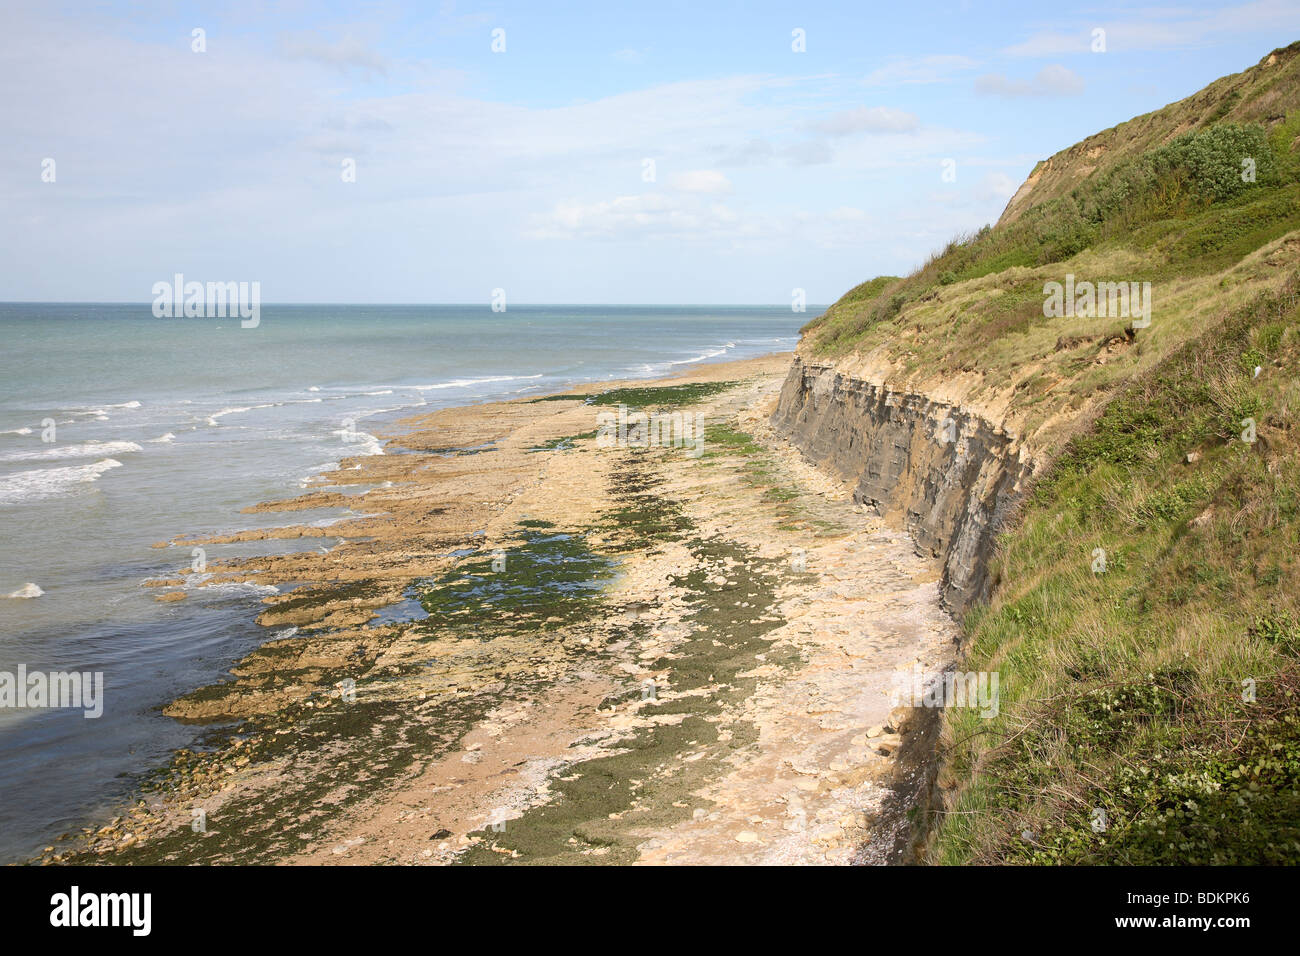 Cliffs And Beach At PortenBessin Normandy France Stock Photo - Location port en bessin